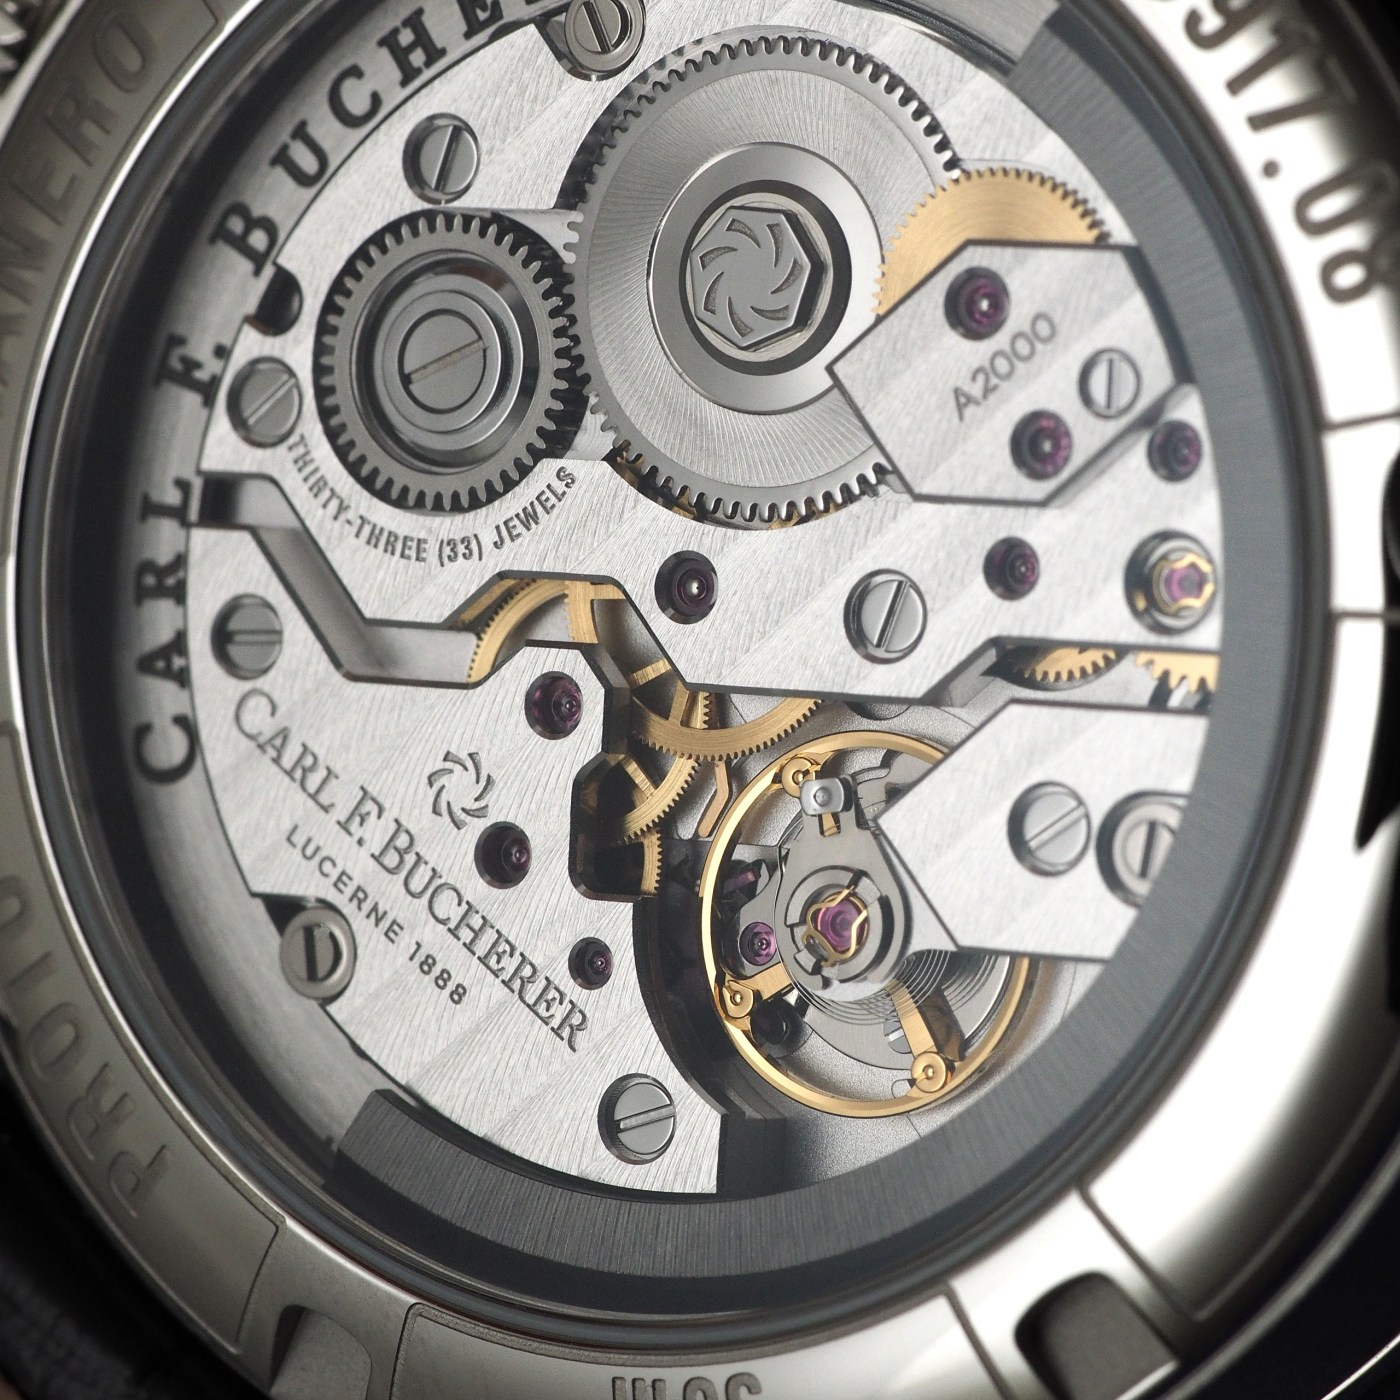 Carl F Bucherer Manero Peripheral caliber A2050